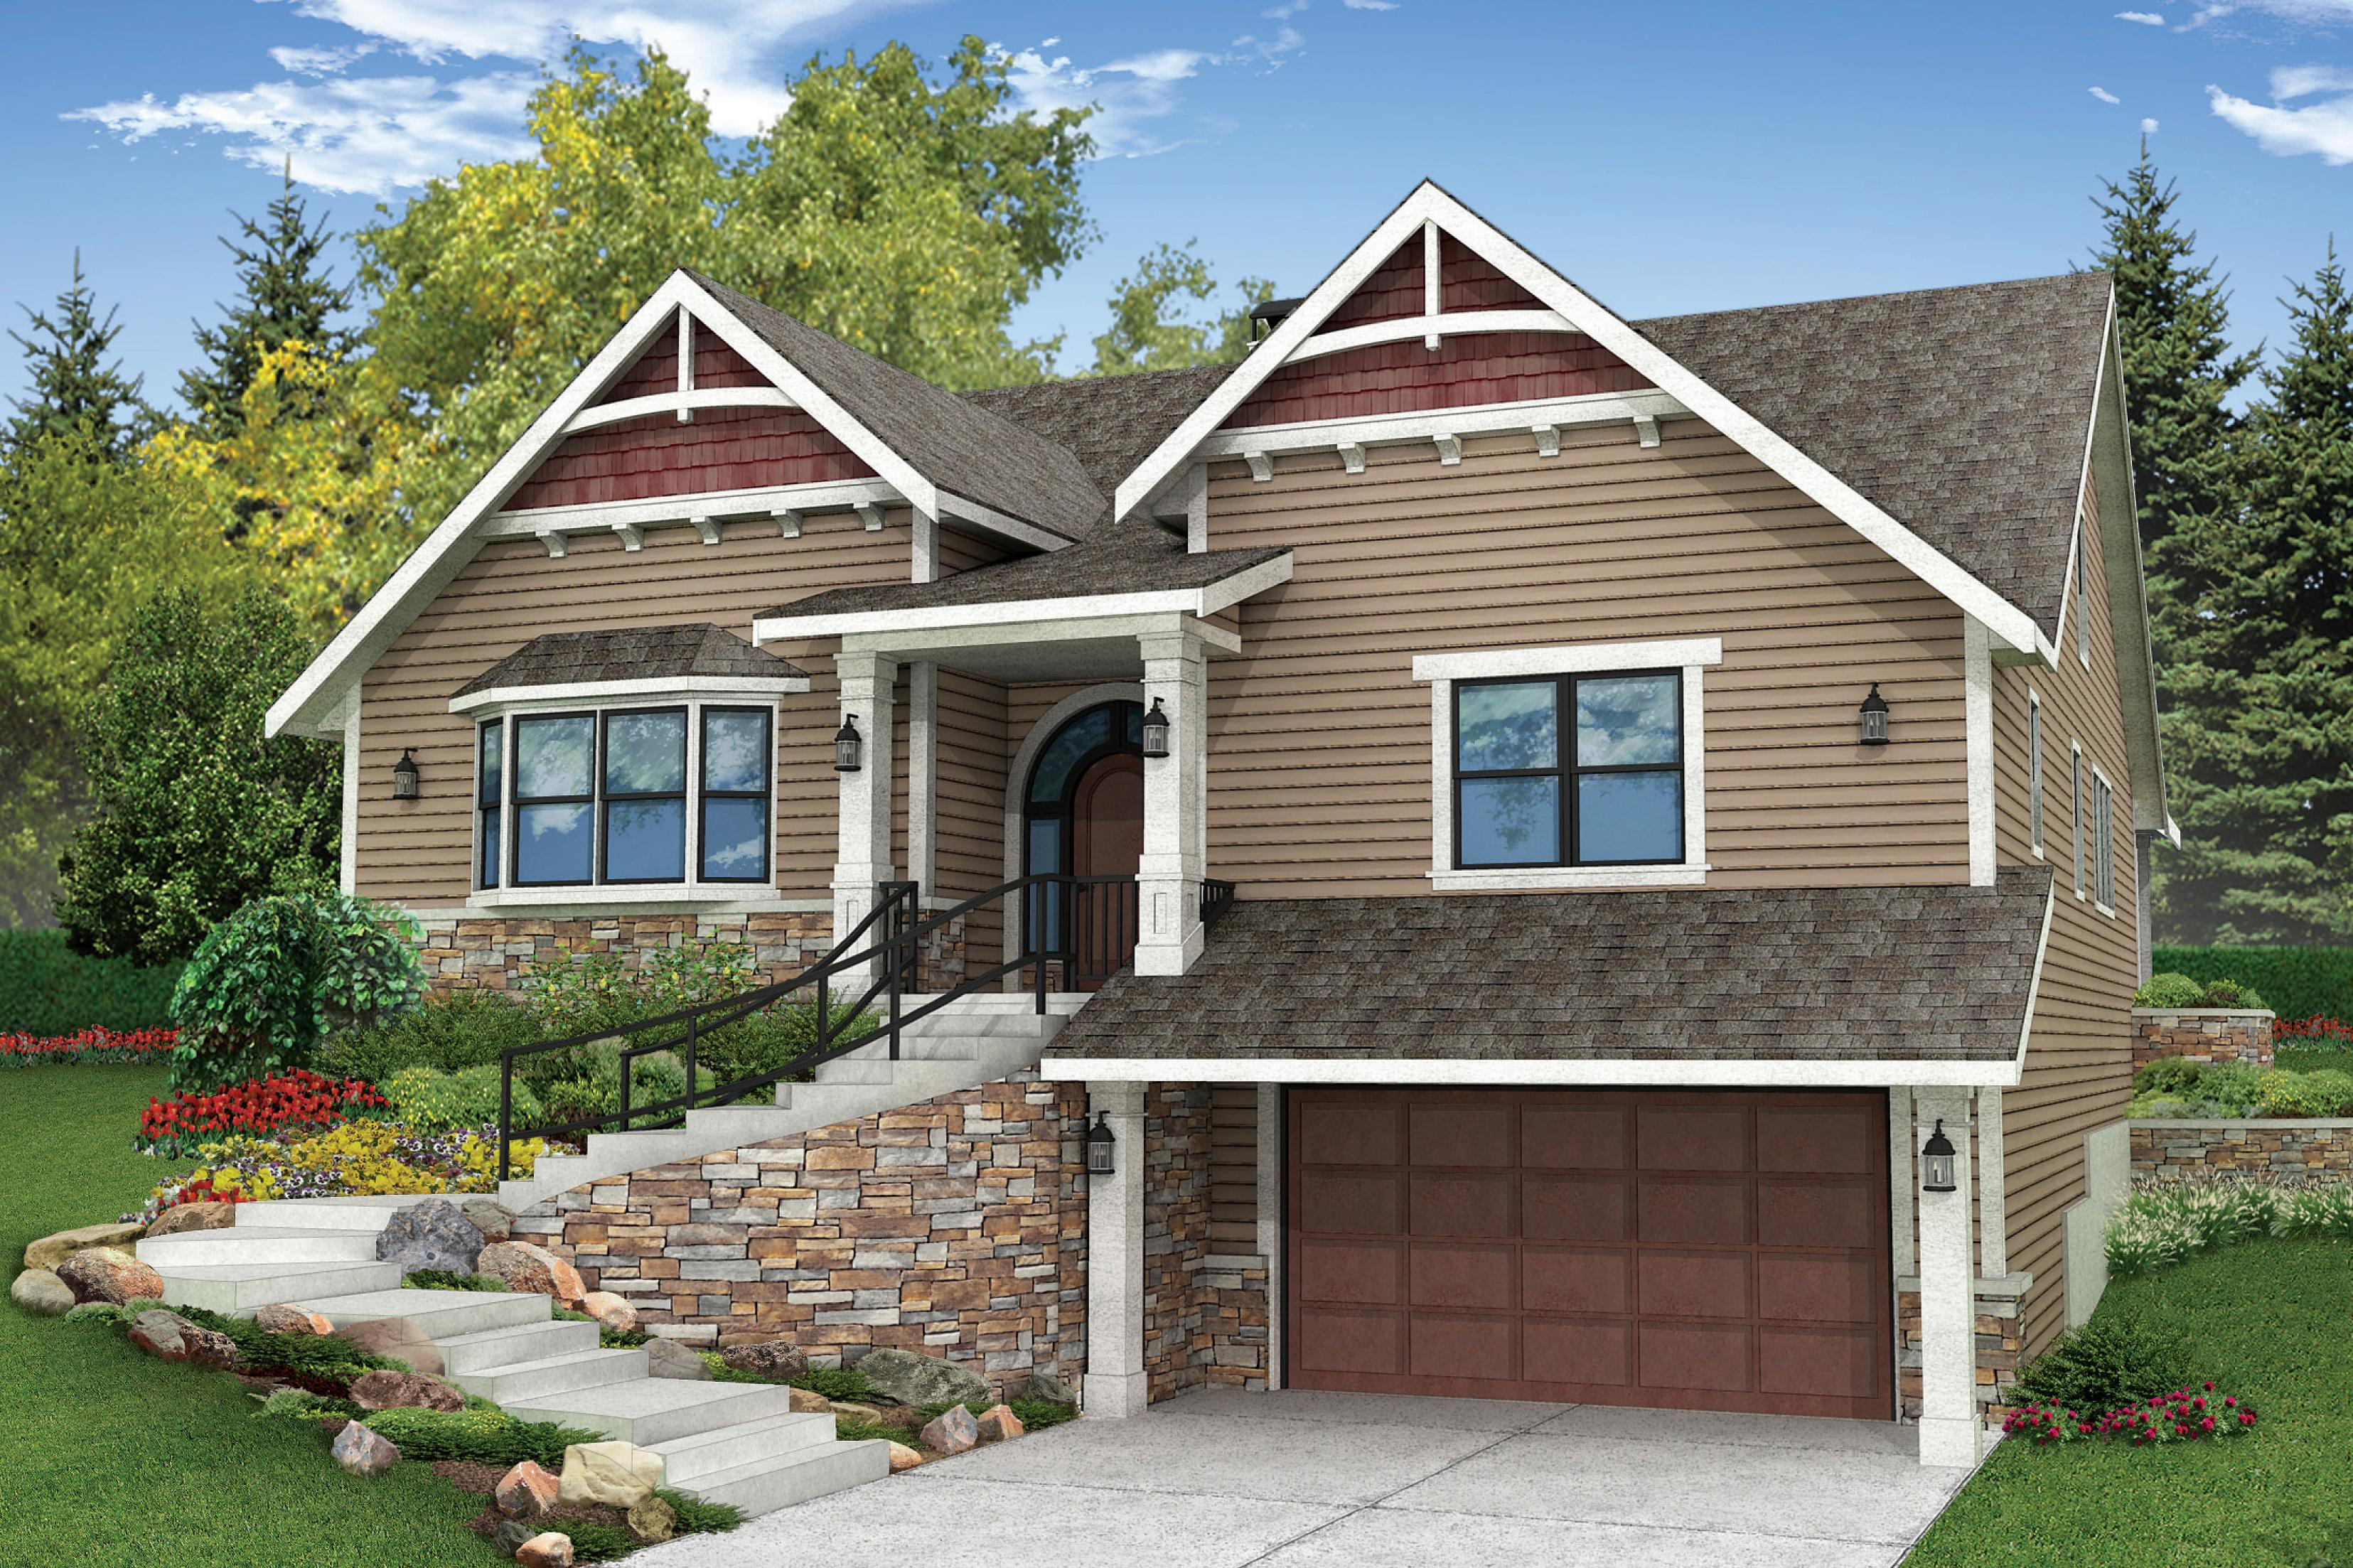 Outfit Your Homes Exterior together with Front Porch Railings Ideas For Small House further Bungalow House Philippines Plan in addition Index further 10 Tips For Designing A Great Deck. on raised ranch homes house plans